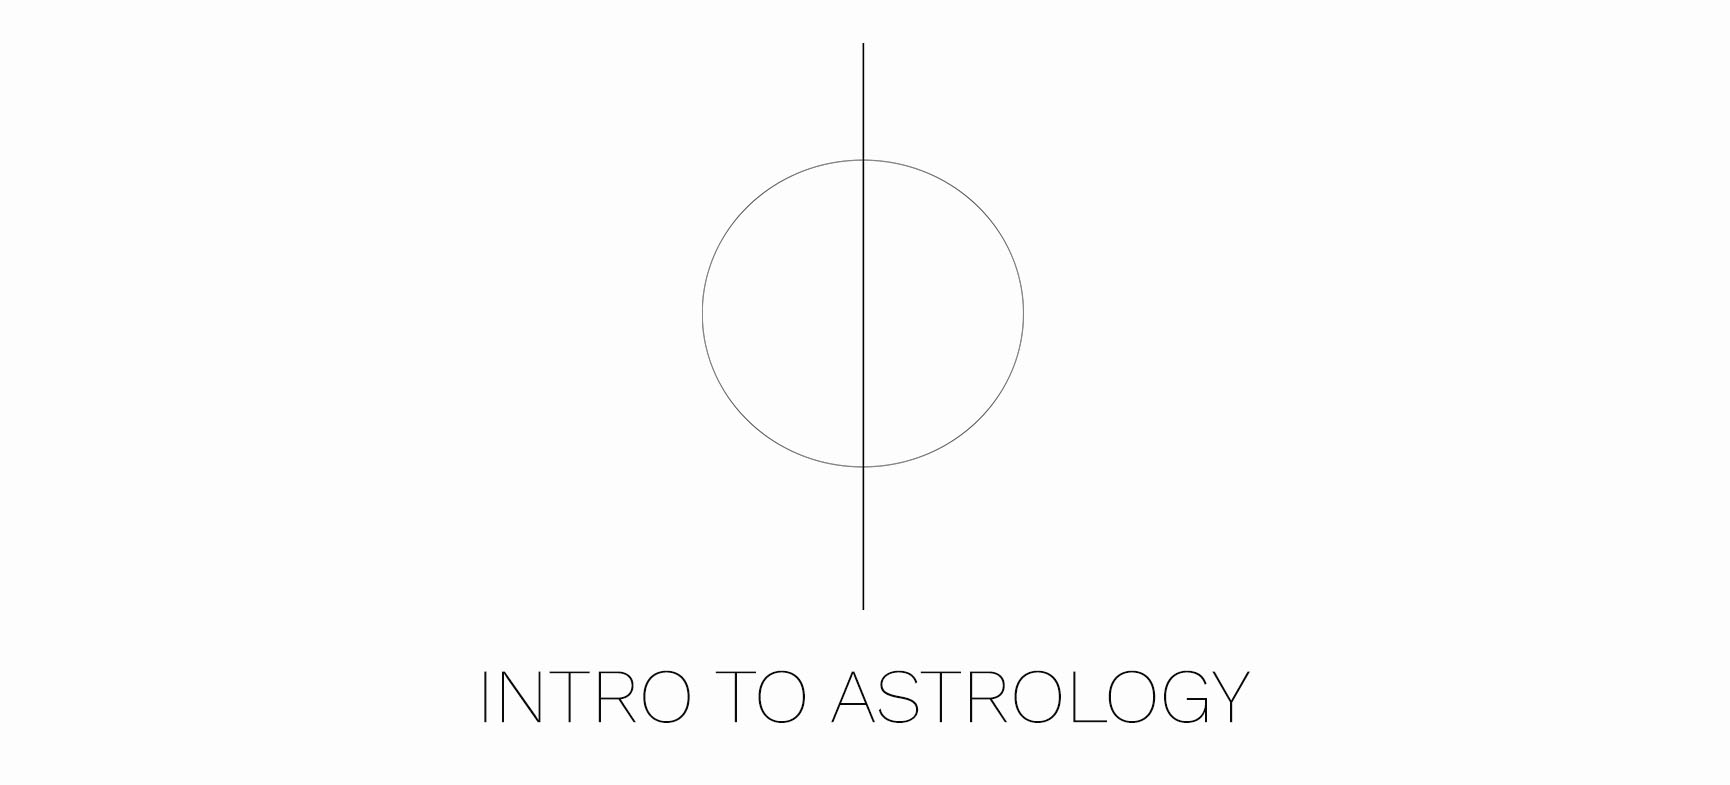 Introduction to Astrology Course by Danielle Beinstein